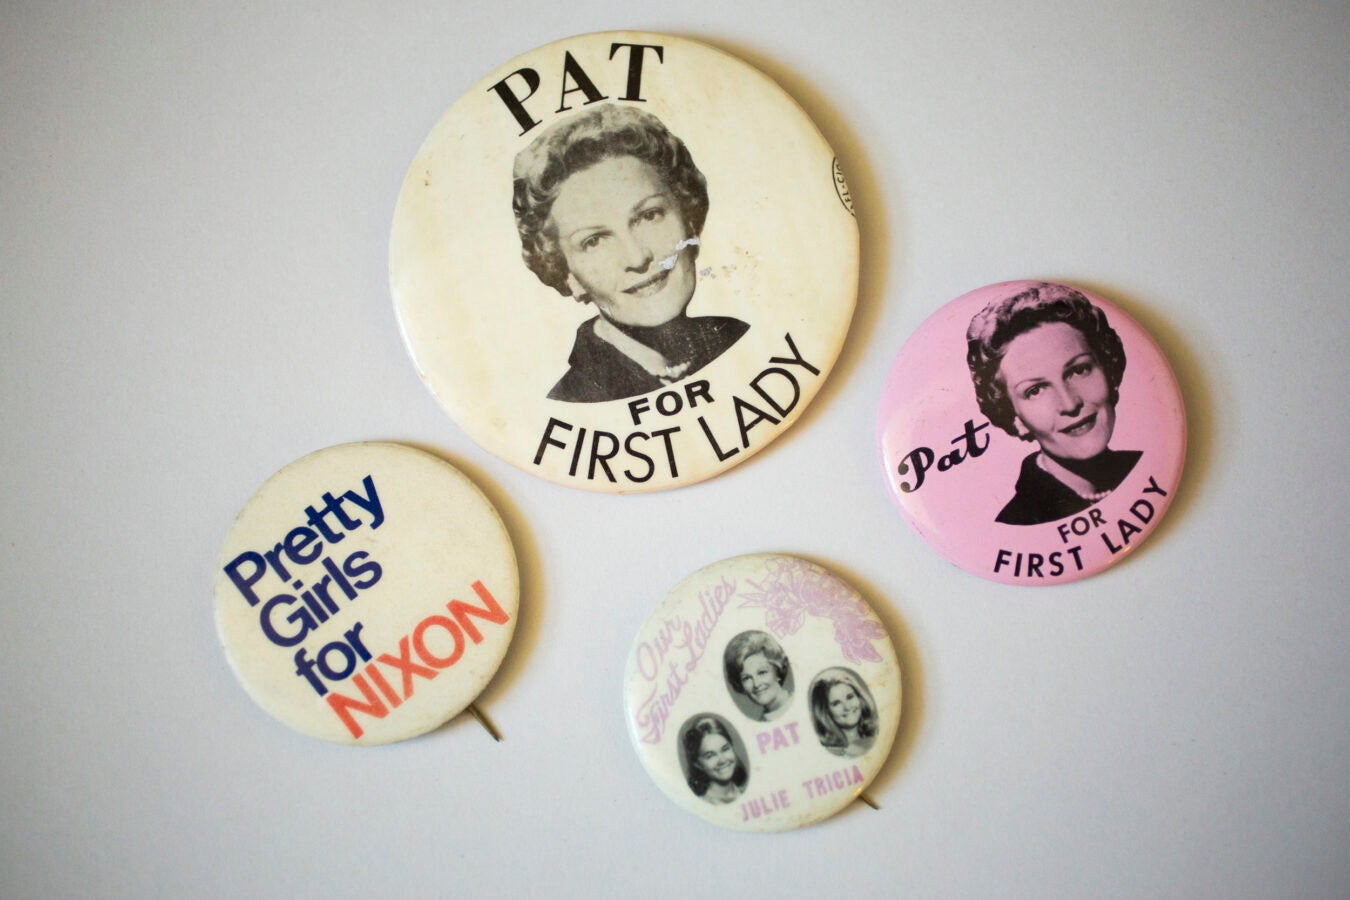 Pat, Julie, and Tricia Nixon had their own supporters and buttons.